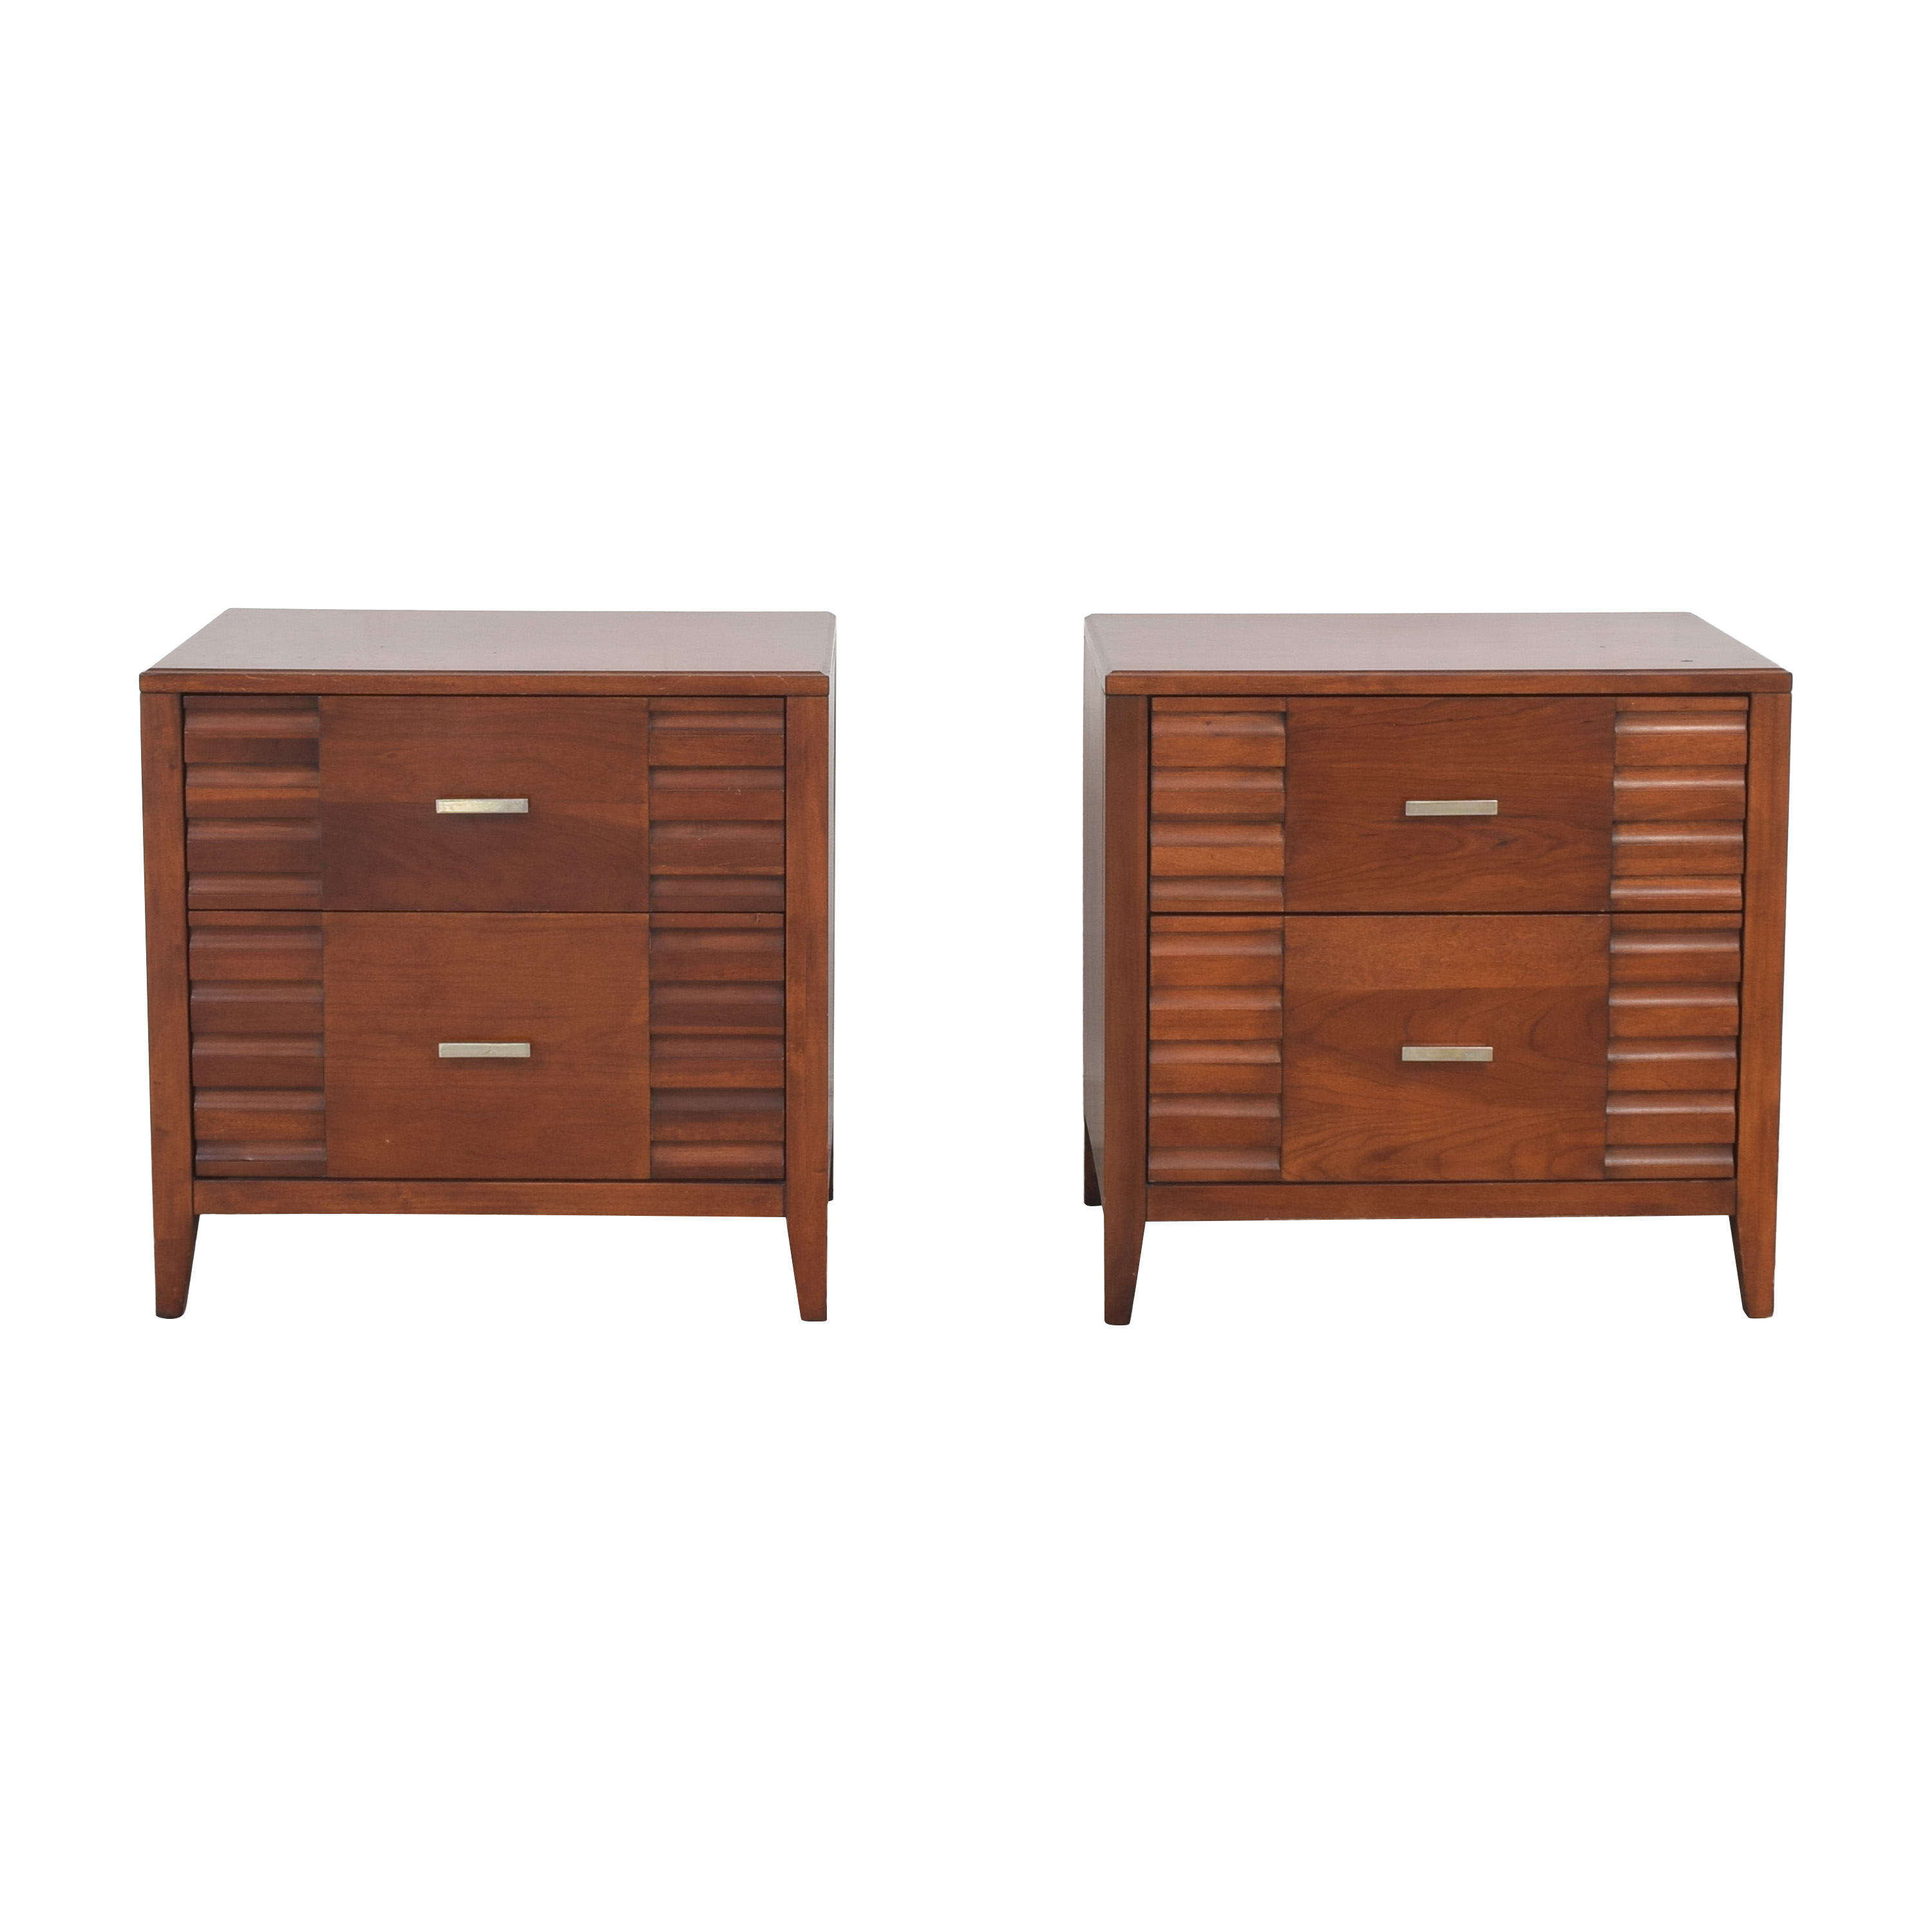 shop Raymour & Flanigan Nightstands Raymour & Flanigan